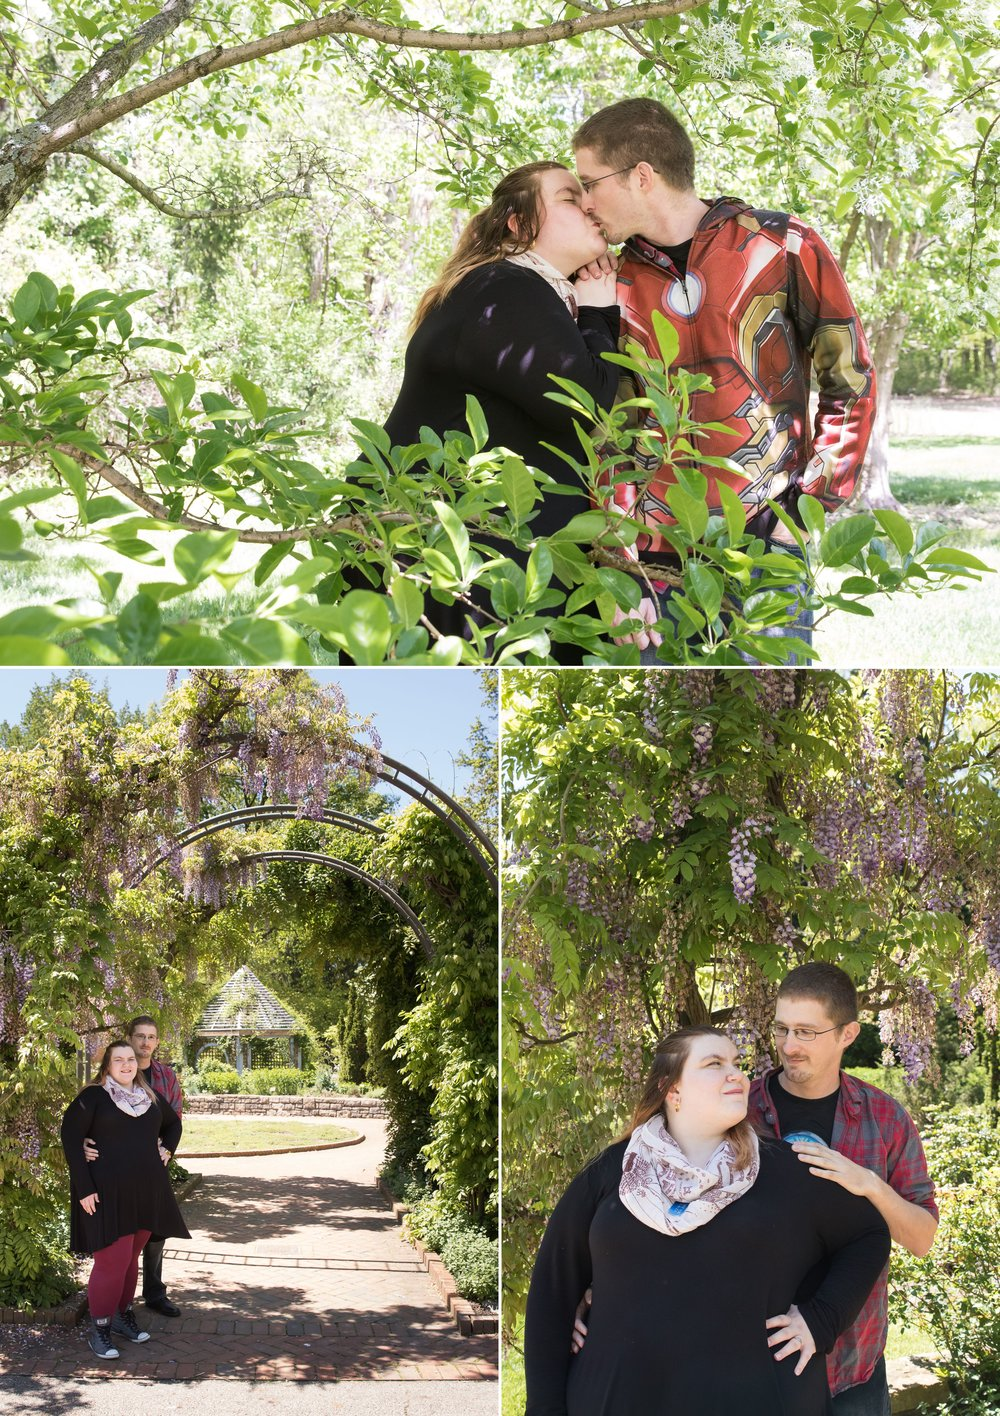 inniswood-metro-gardens-engagement-portrait-session-columbus-westerville-ohio-muschlitz-photography-002.JPG